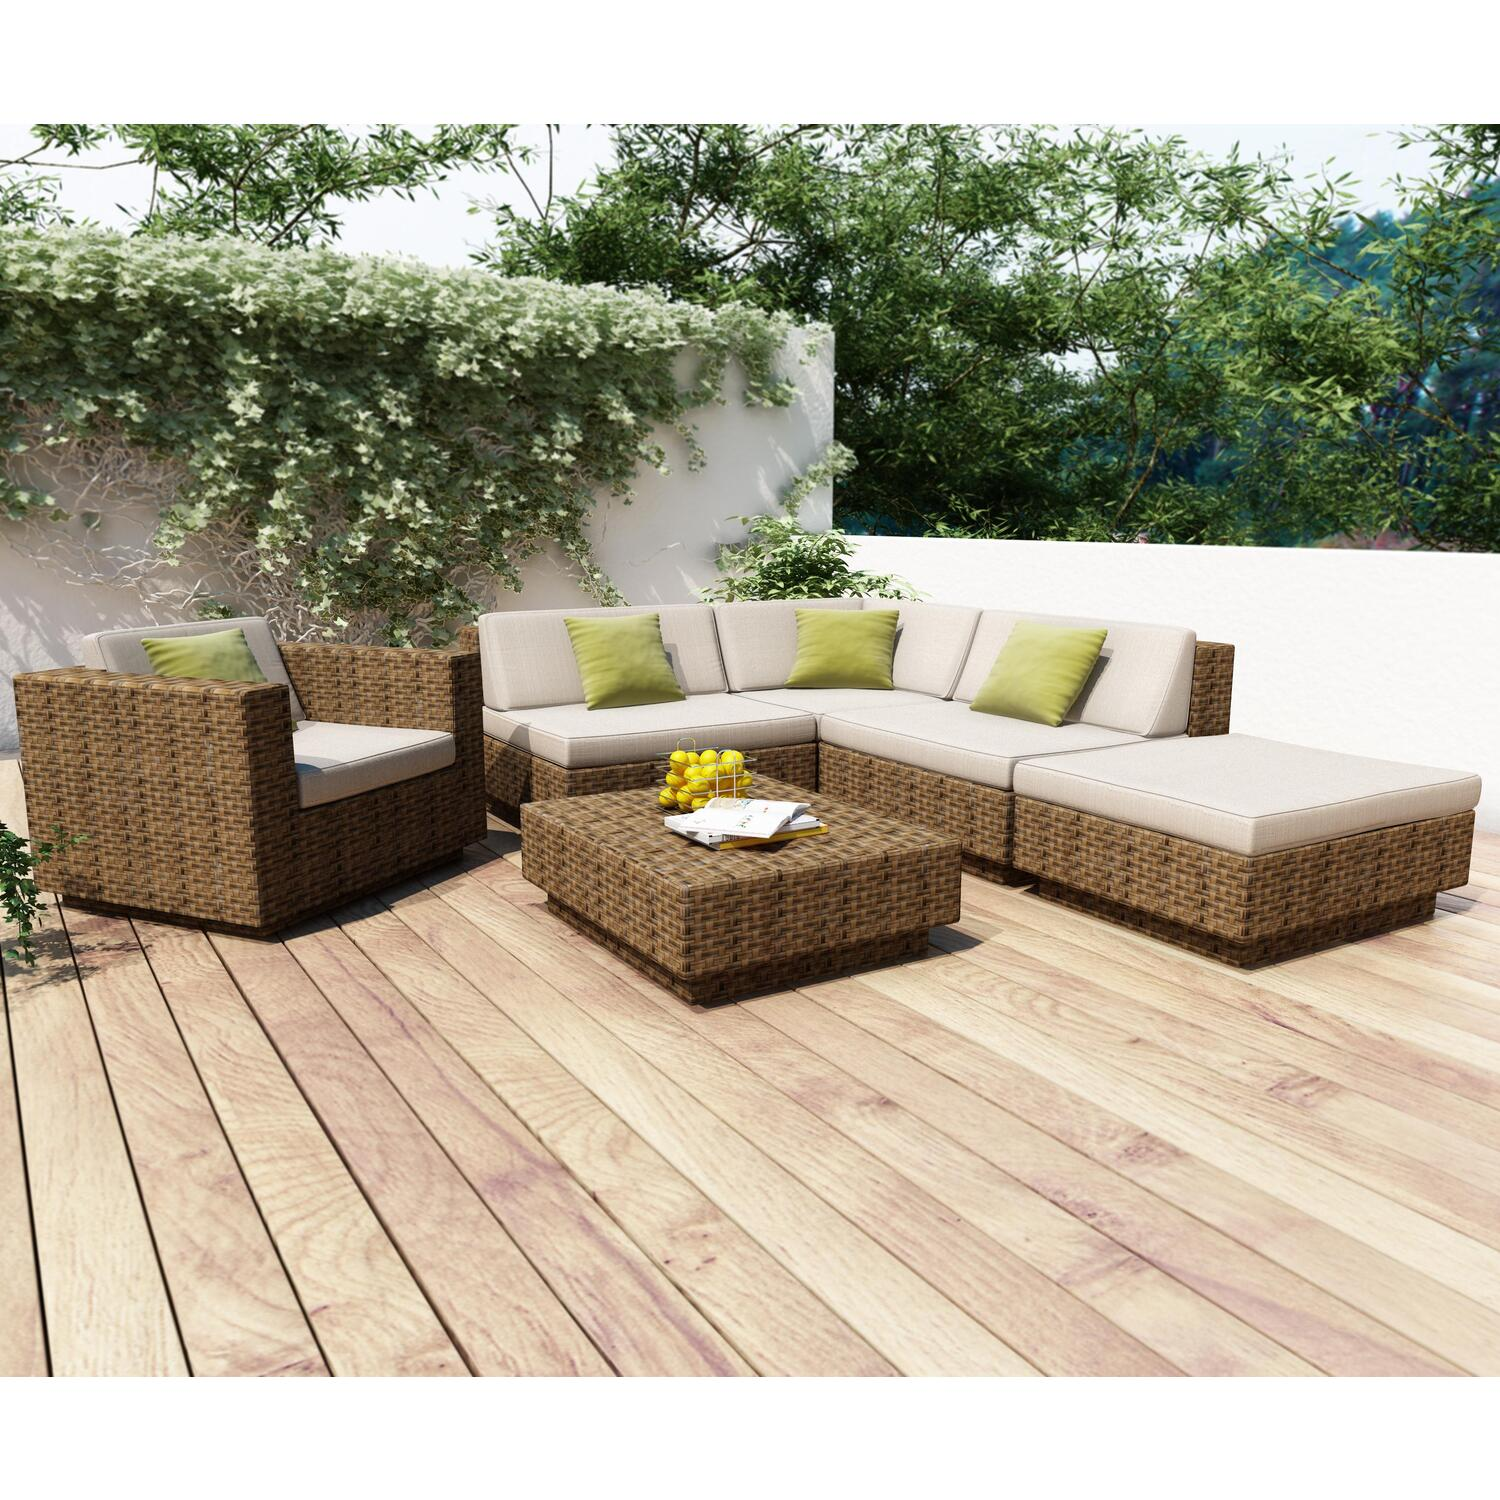 Park terrace 6 piece sectional patio set ojcommerce for Patio furniture sets